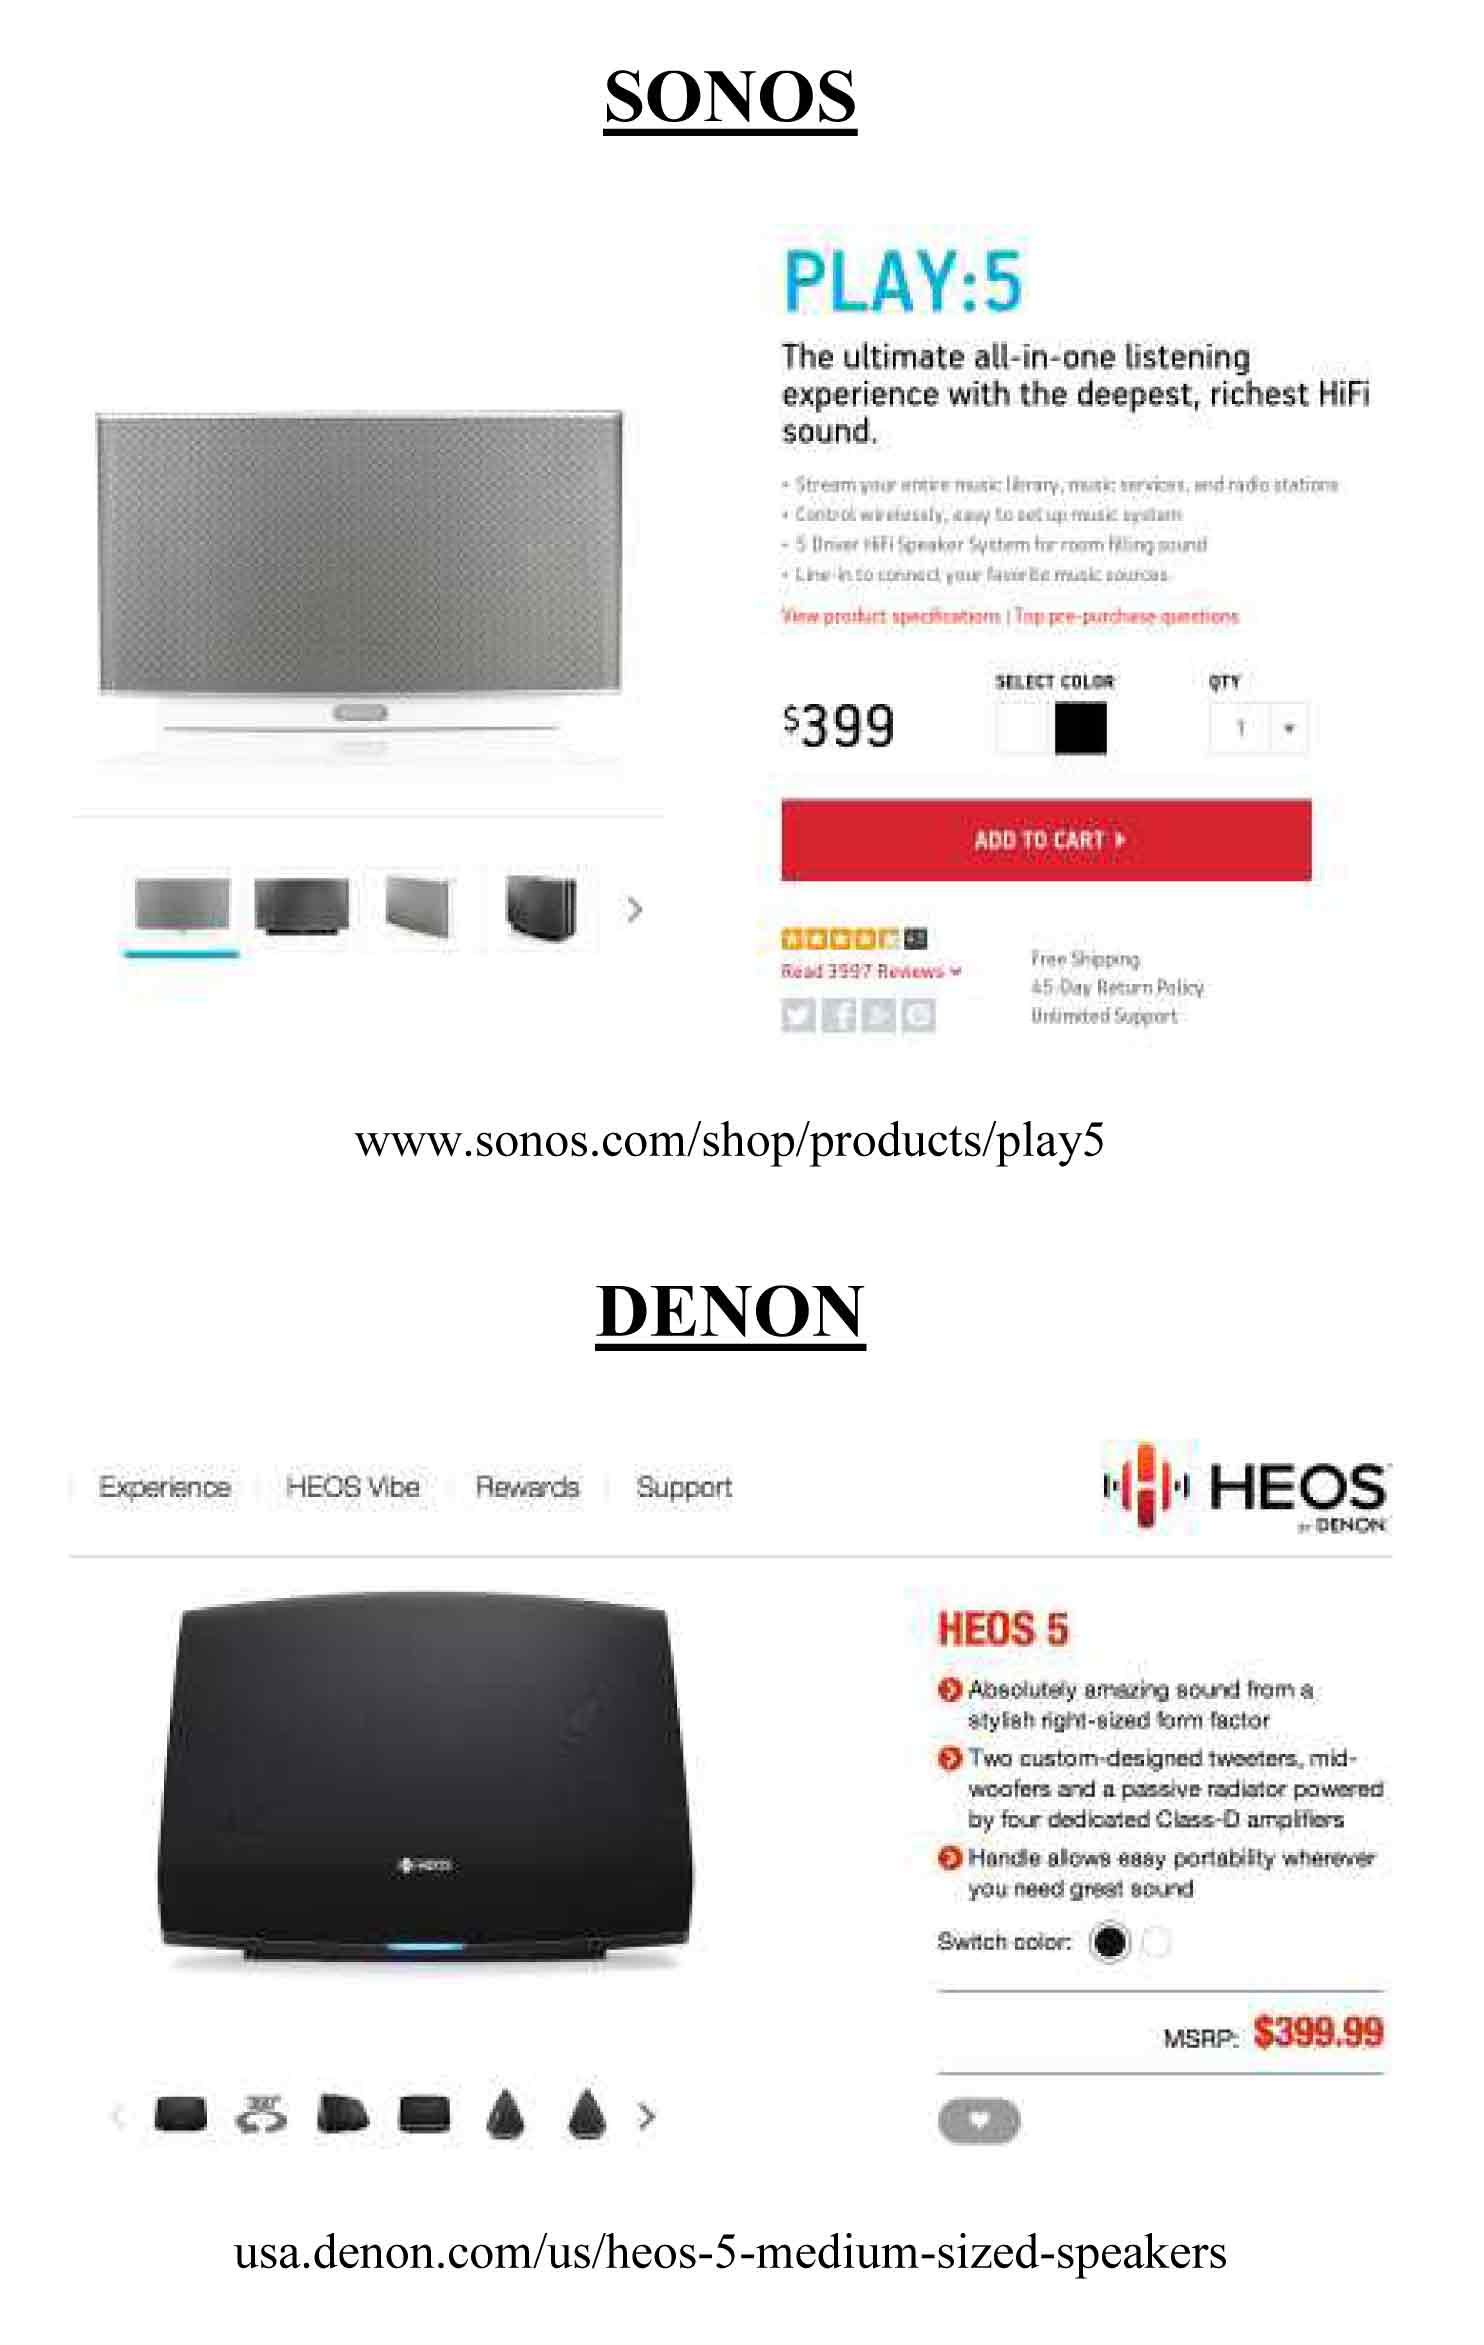 Comparison 1 of Sonos and HEOS website